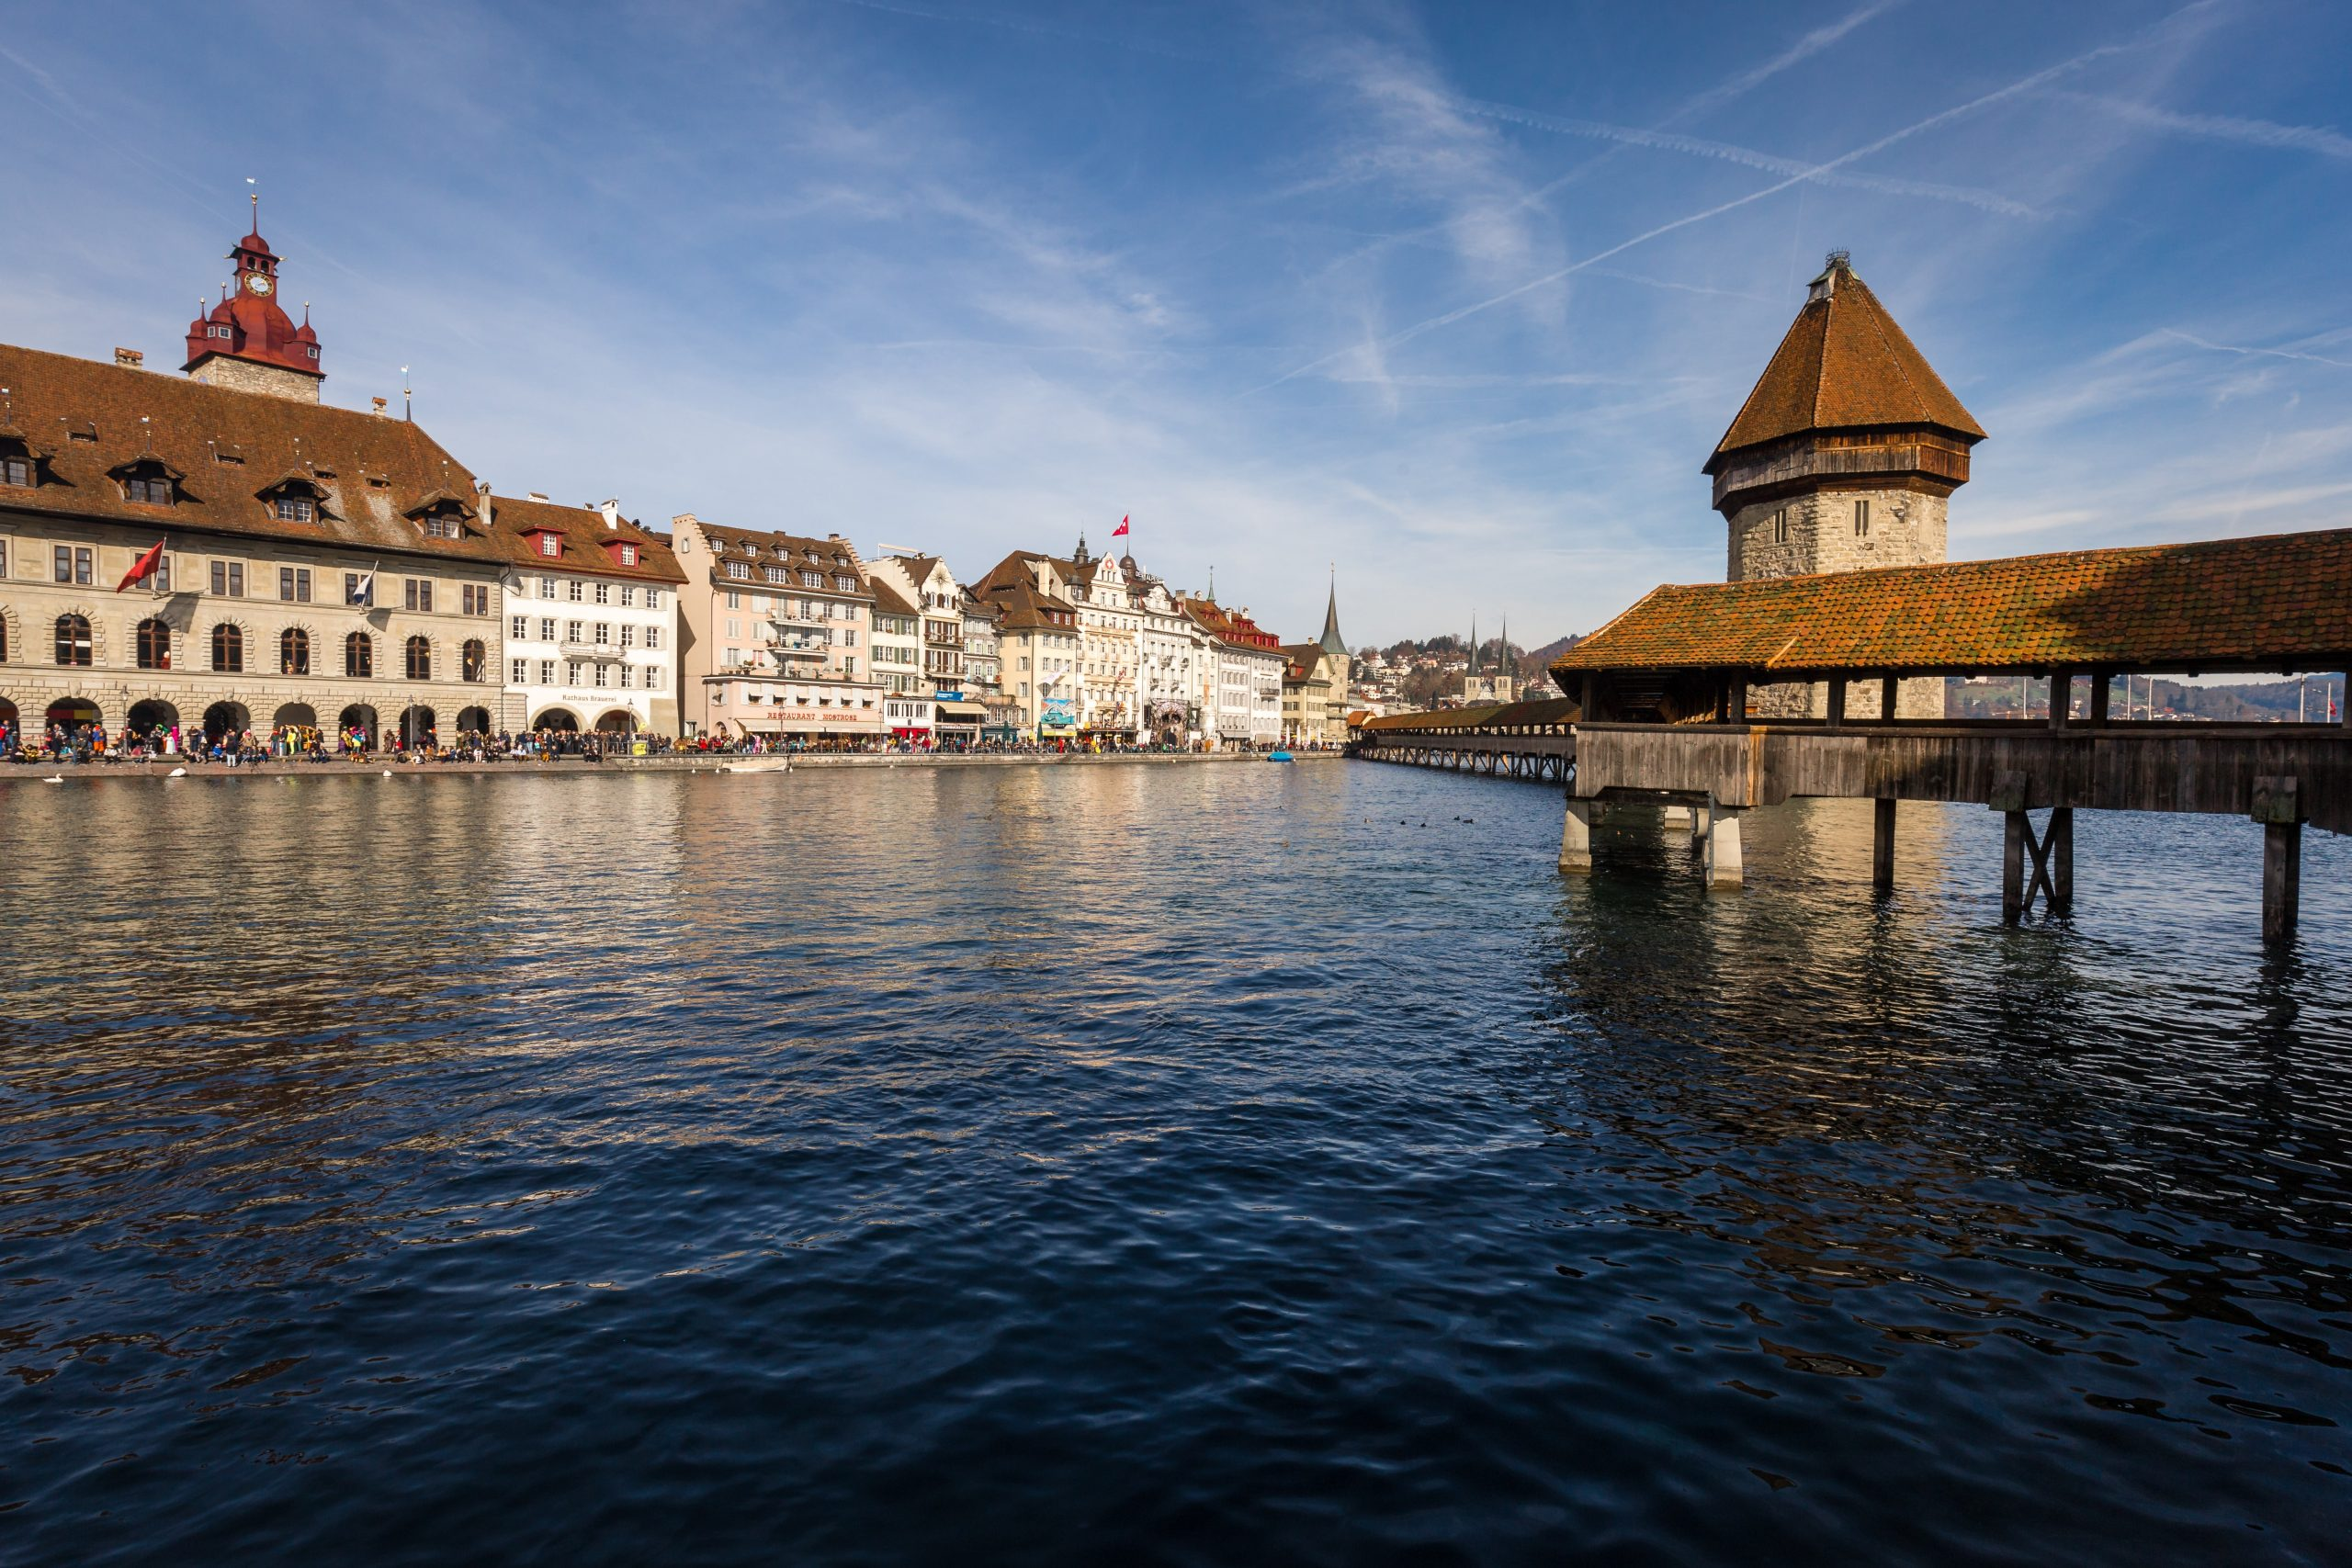 How To Get From Zurich Airport To Lucerne - All Possible Ways